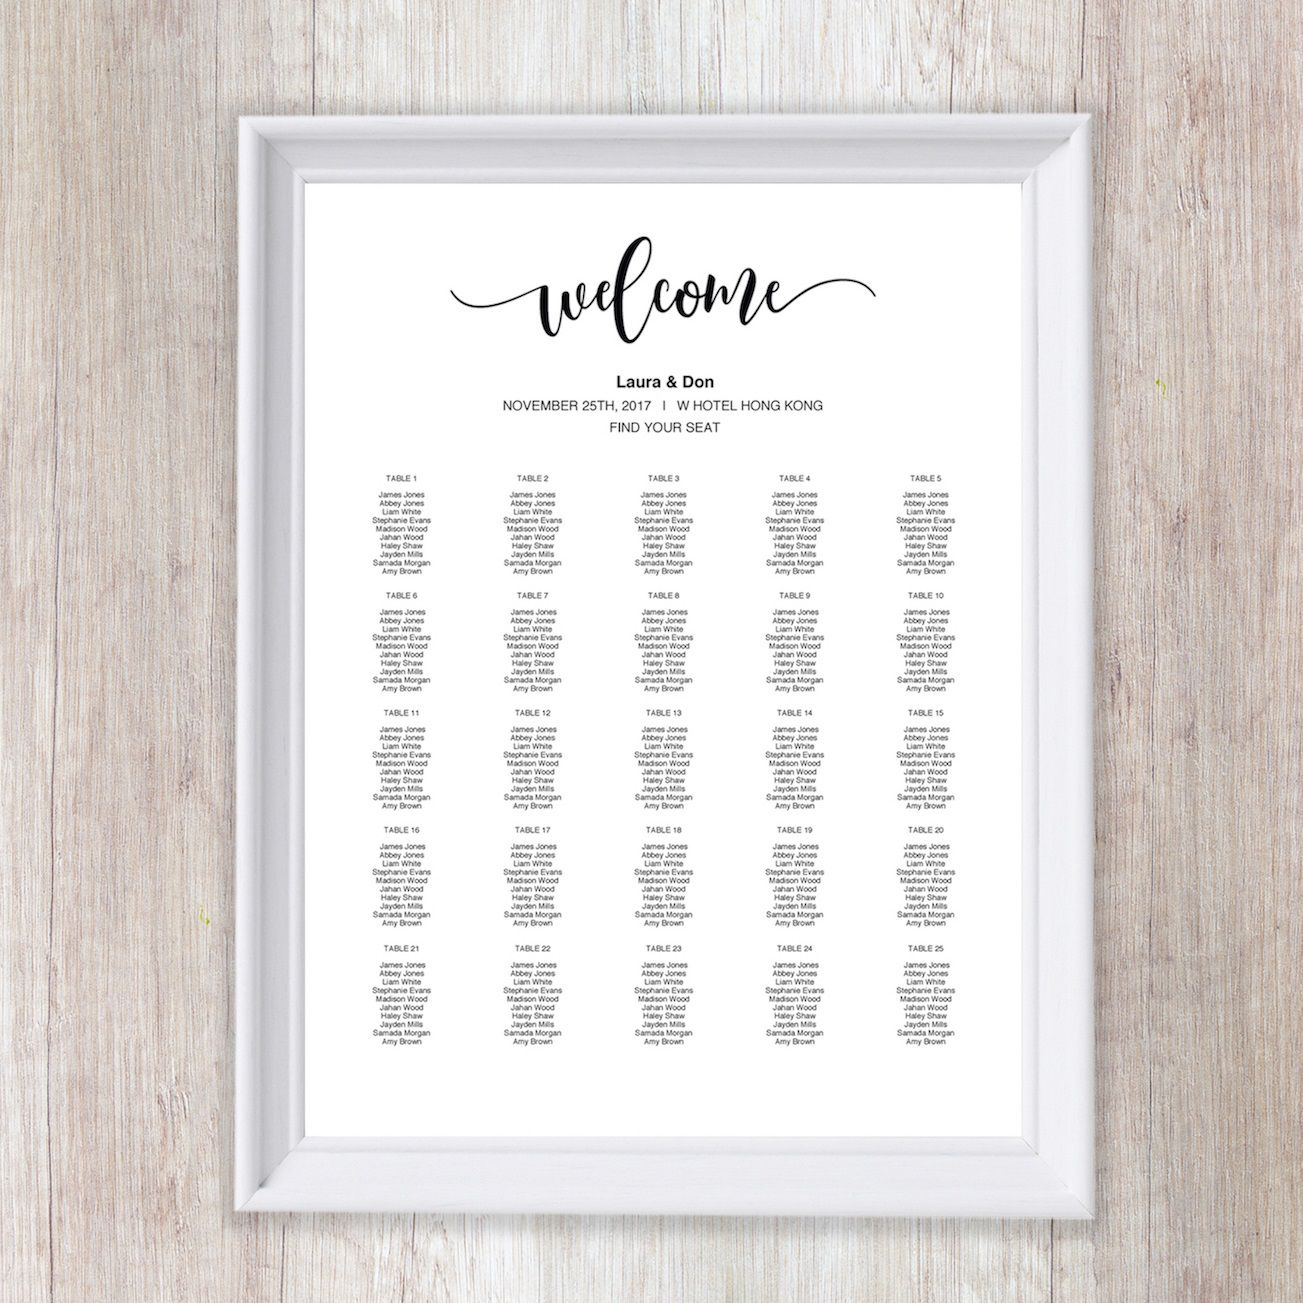 011 Wonderful Wedding Seating Chart Template Concept  Templates Plan Excel Word MicrosoftFull